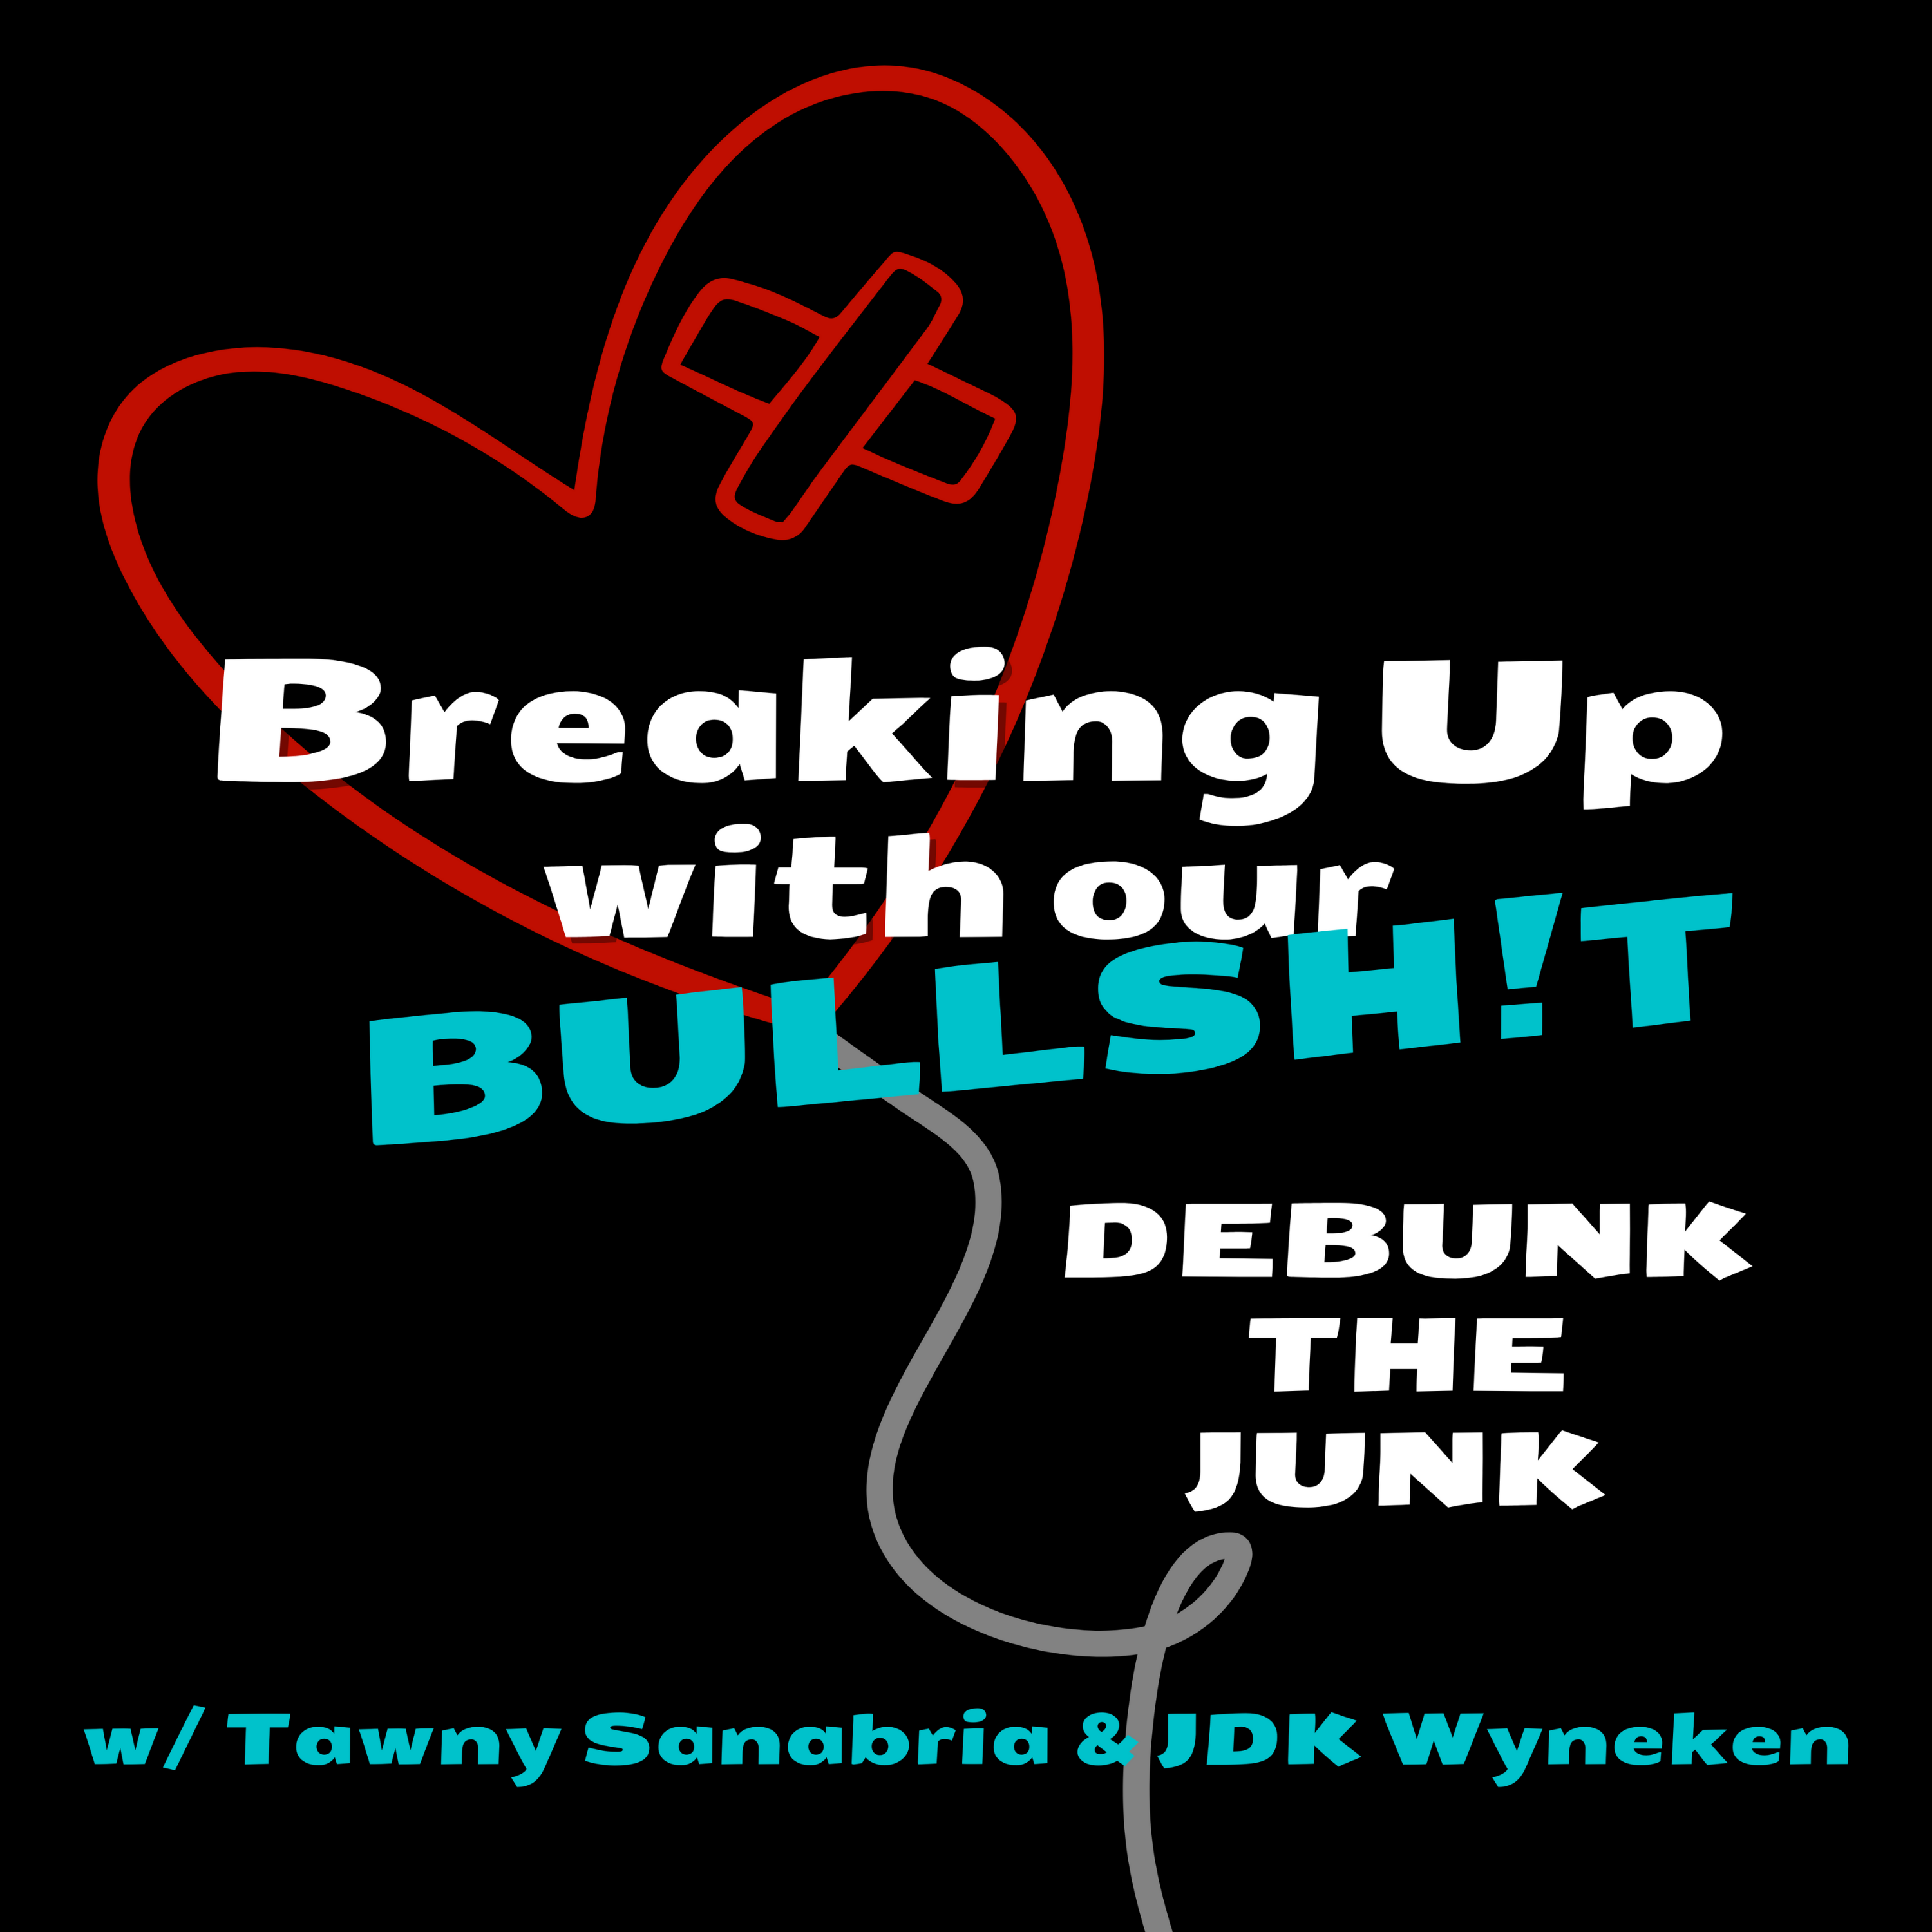 Breaking Up with our Bullsh!t